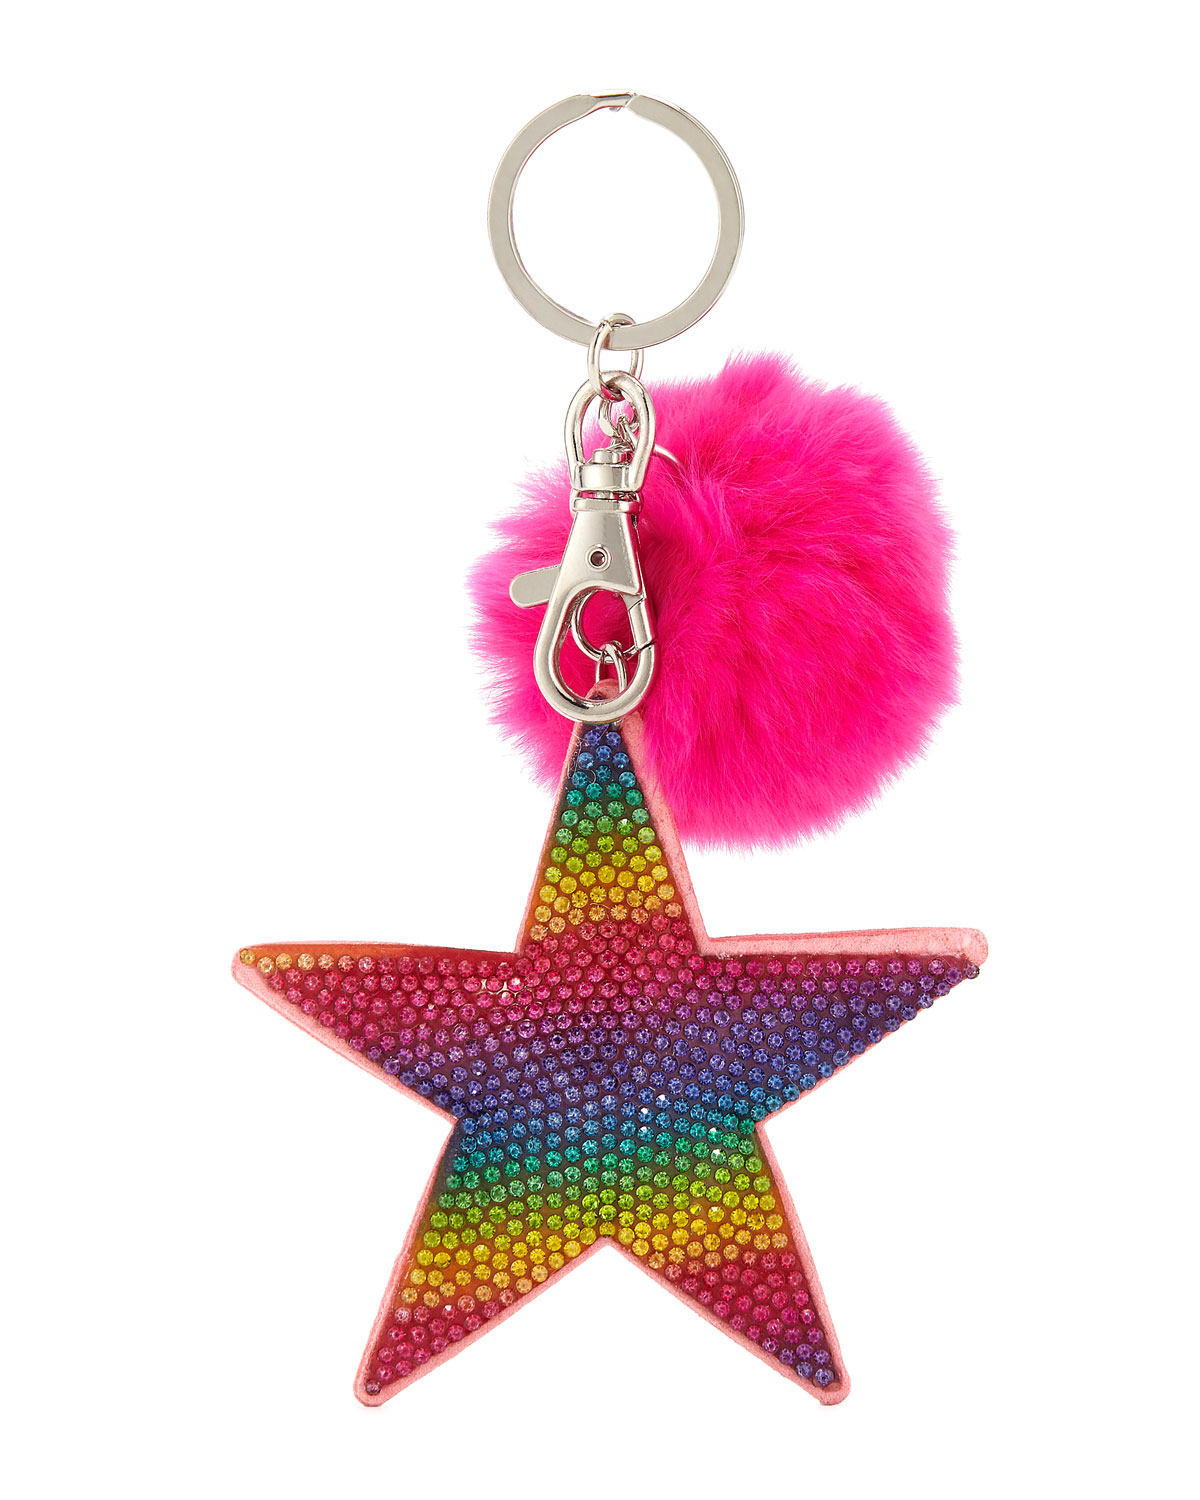 Girls' Crystal Rainbow Star Key Chain w/ Fur Pompom